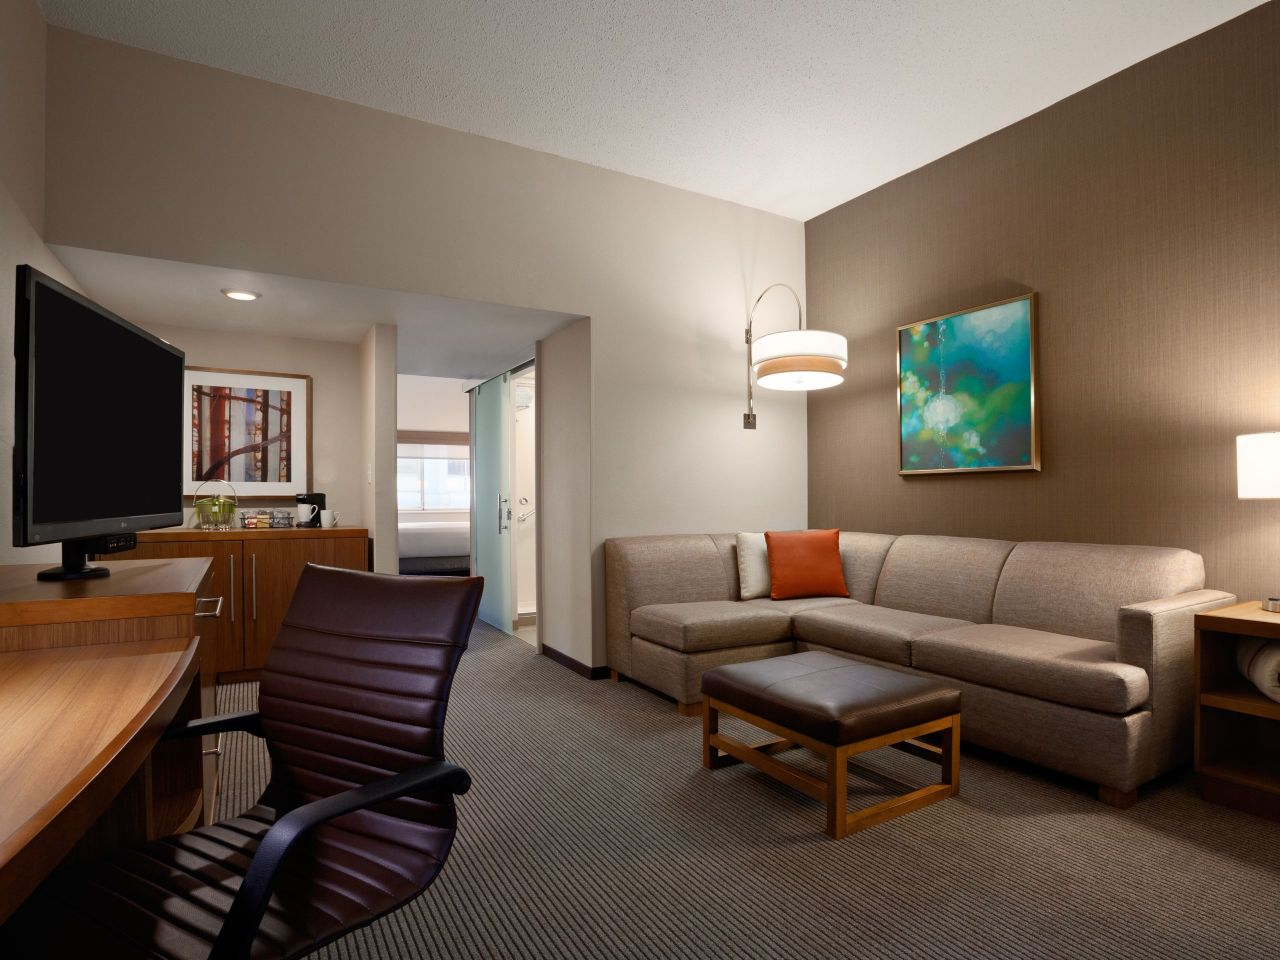 Hyatt Place Minneapolis / Downtown suite living area